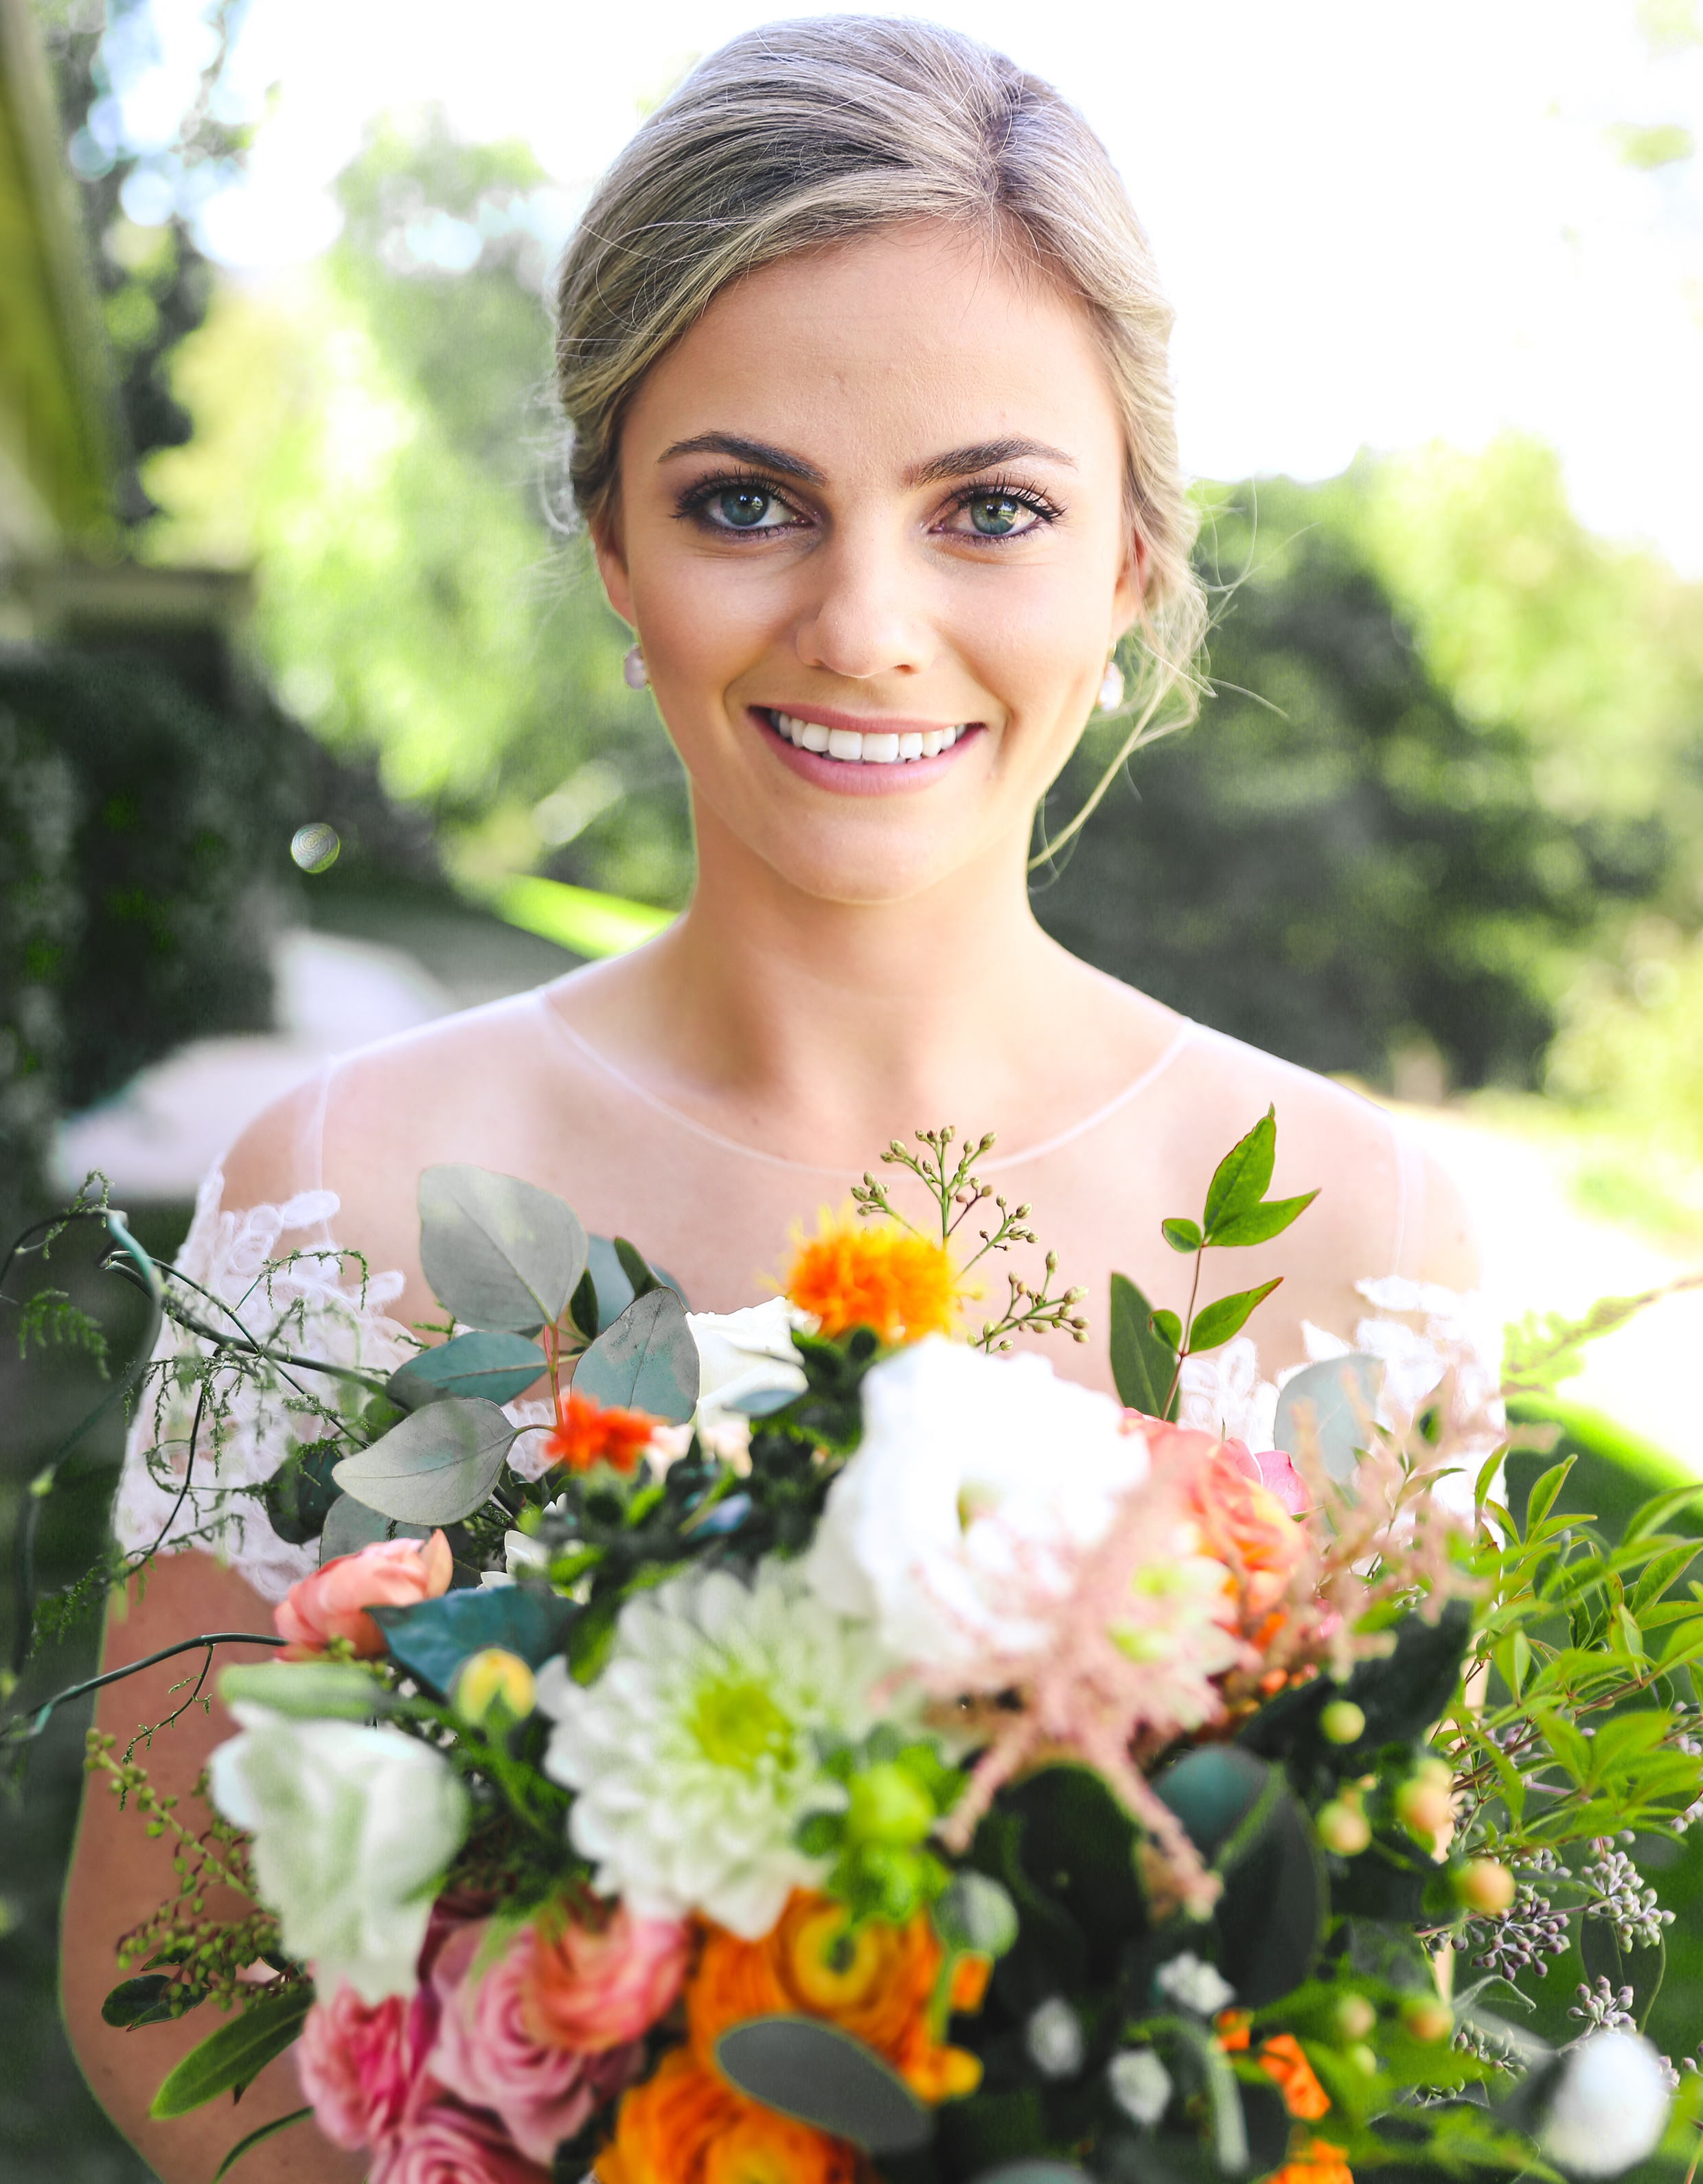 Wedding-Photography-Guidebook-Second-Edit_0013_Pg 14 - Full Page Image.jpg